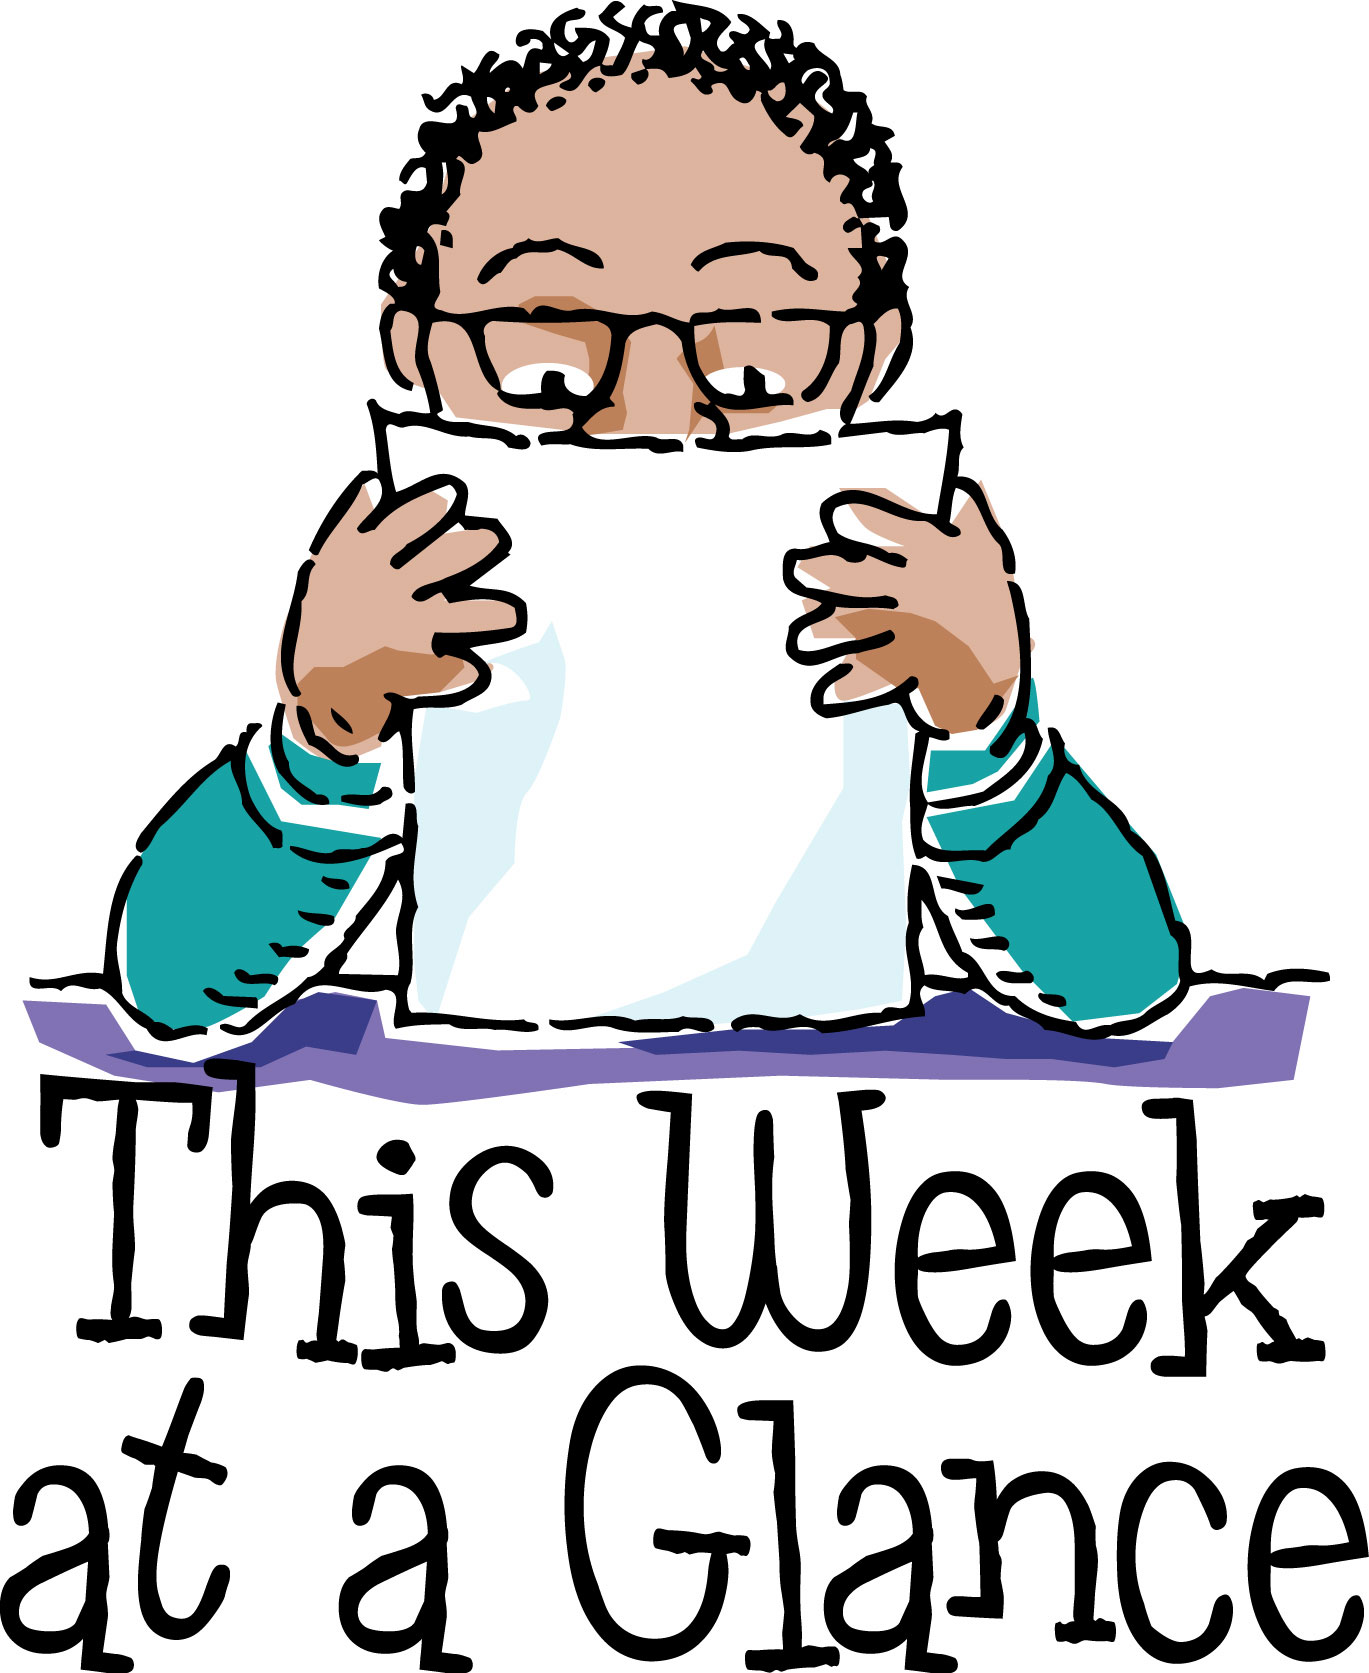 Week Clipart | Free download on ClipArtMag